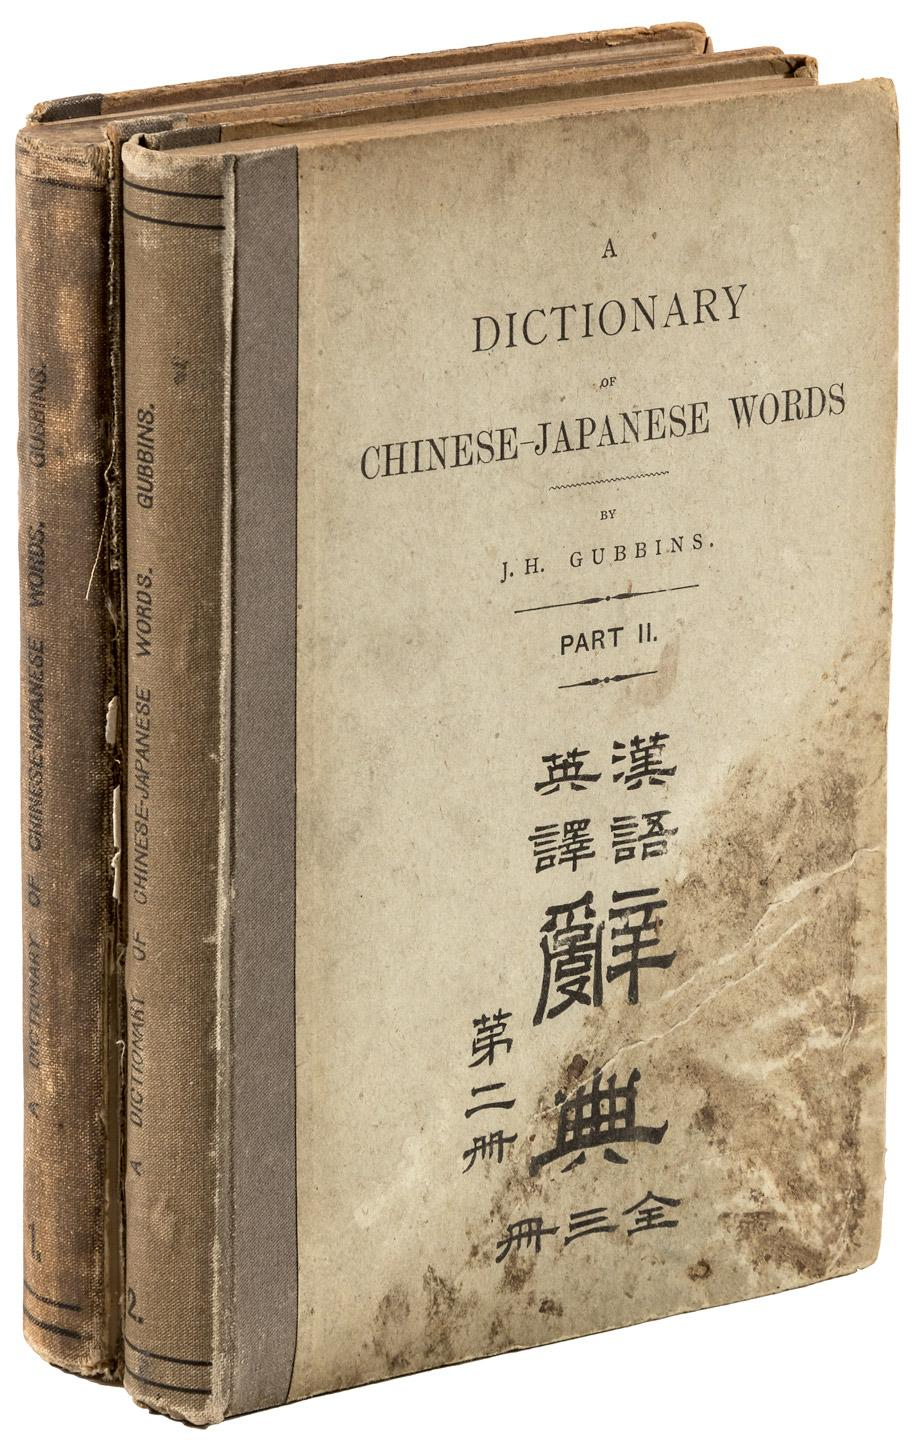 A Dictionary of Chinese-Japanese Words in the Japanese